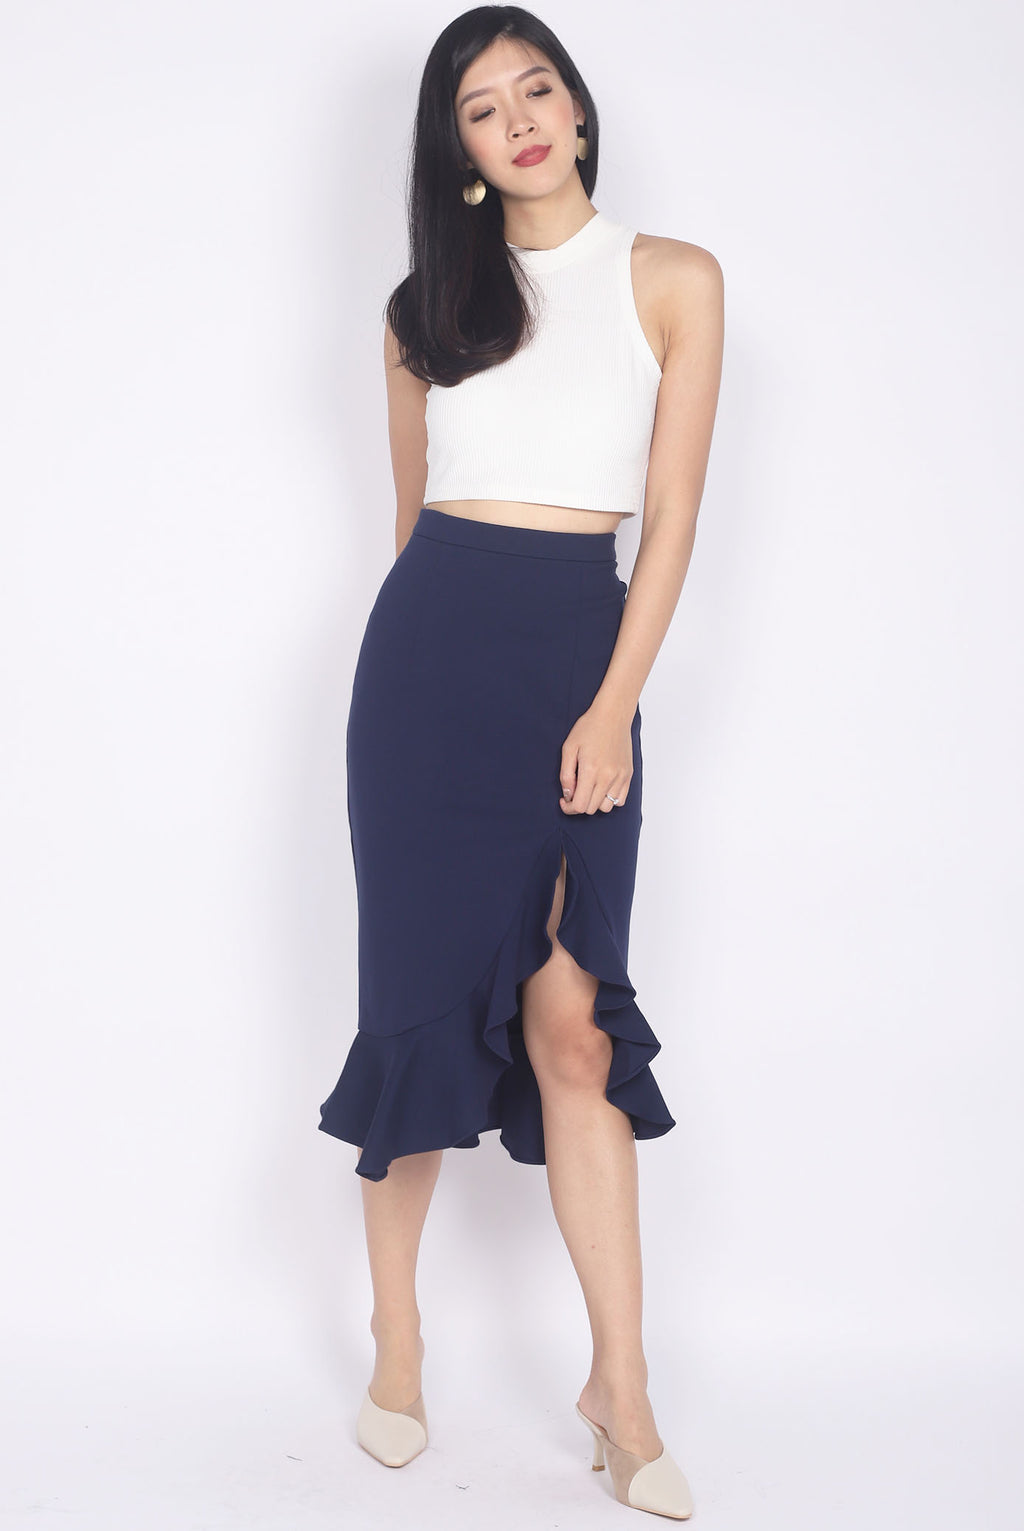 *Premium* Denver Mermaid Slit Skirt In Navy Blue